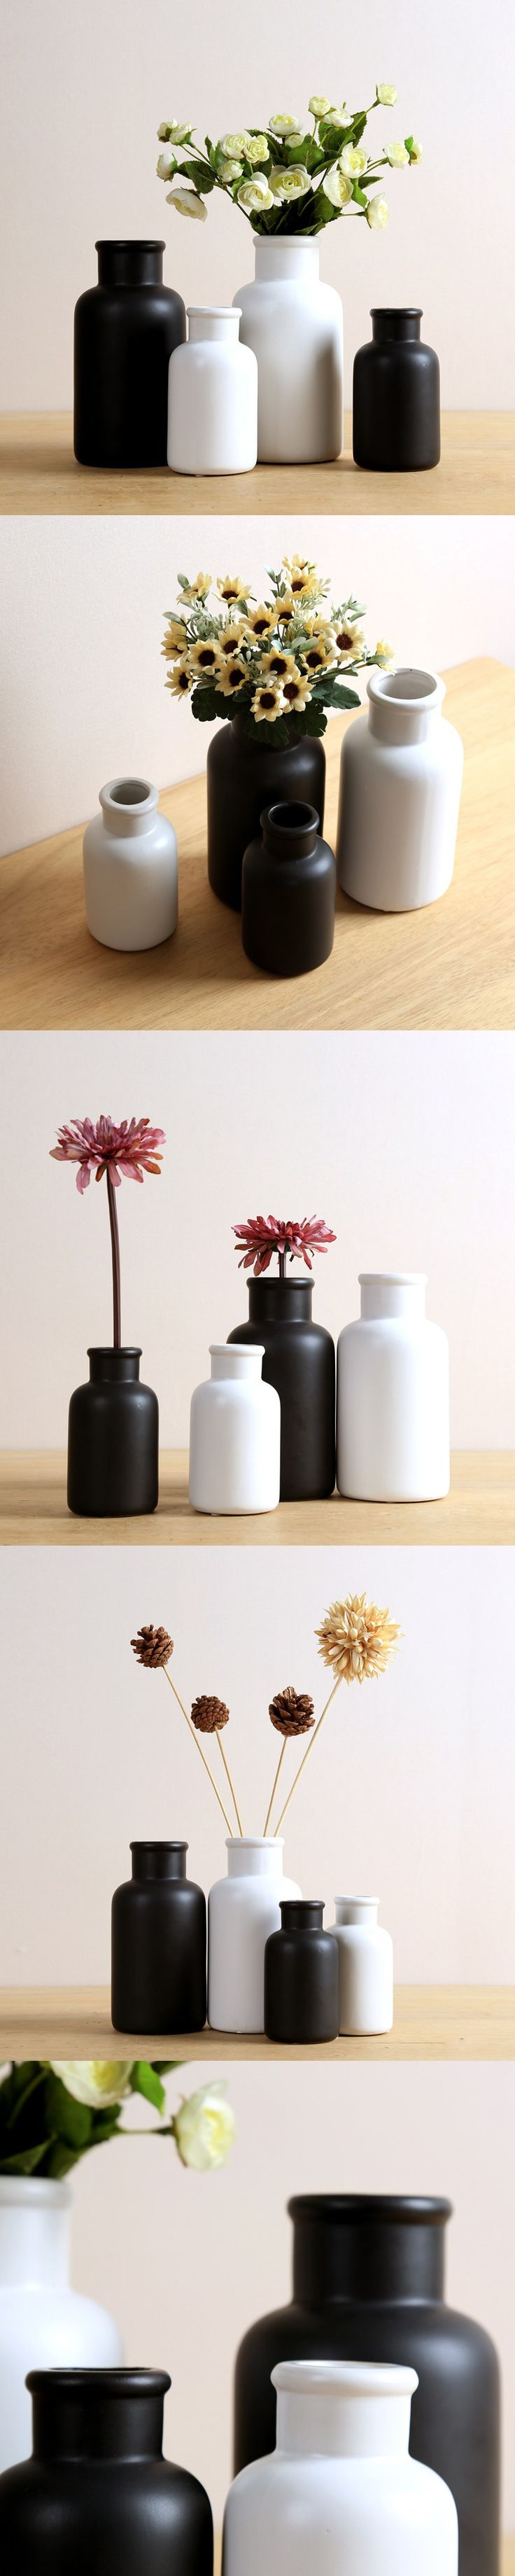 Best 25 ceramic bisque ideas on pinterest ceramics to paint country japanese minimalist black and white home furnishing decorative crafts ornaments handmade ceramic bisque vases dailygadgetfo Choice Image